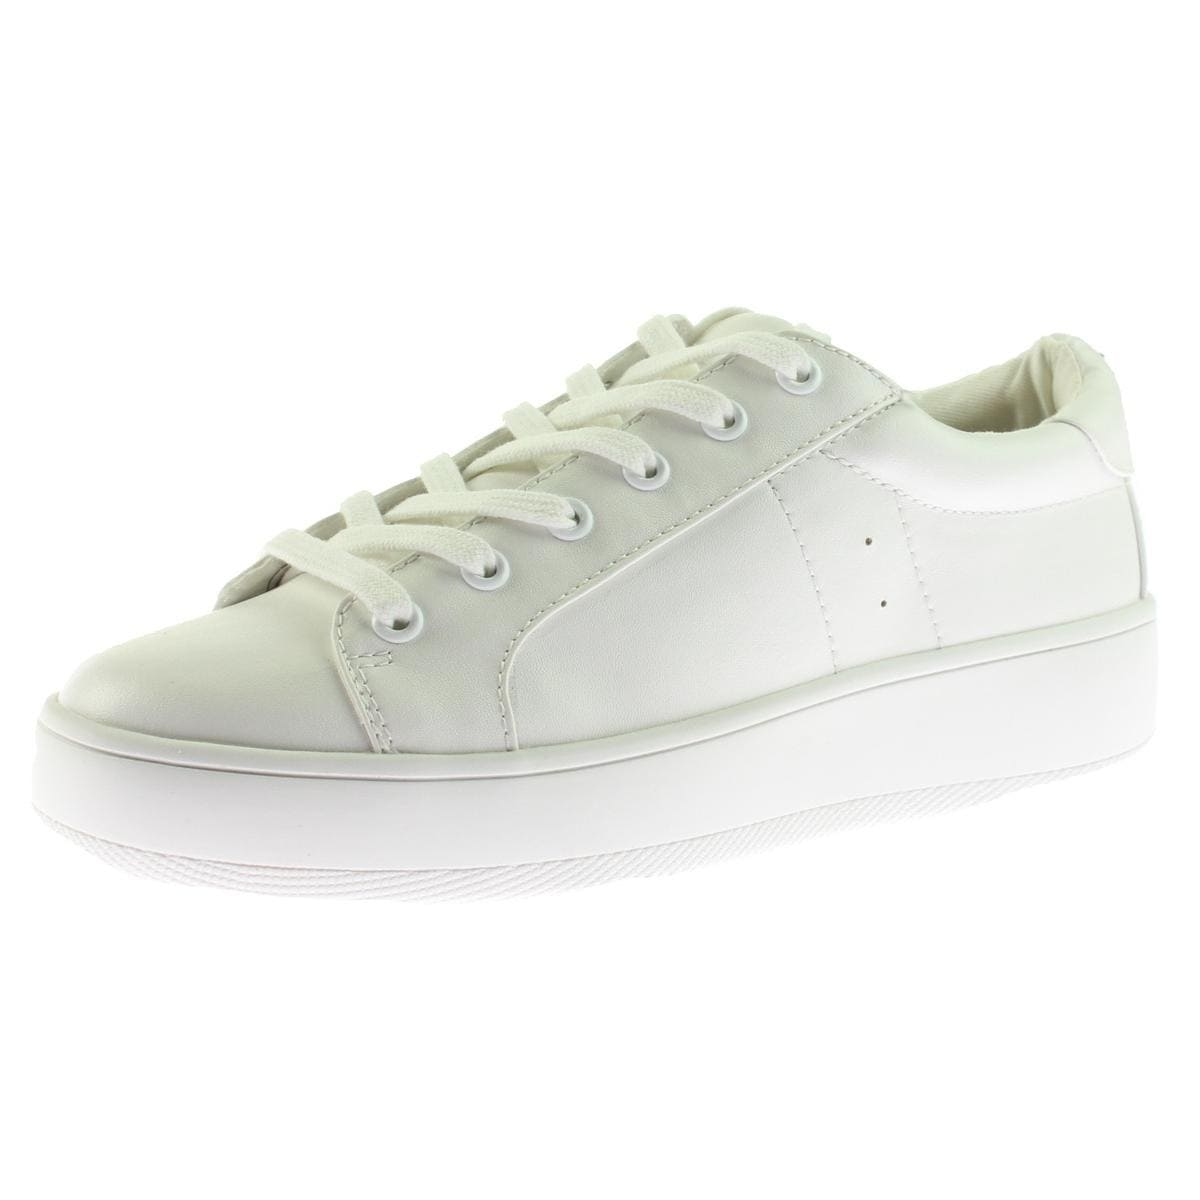 ea0cafdf833 Shop Steve Madden Womens Bertie Fashion Sneakers Casual - Free Shipping On  Orders Over  45 - Overstock.com - 17062771